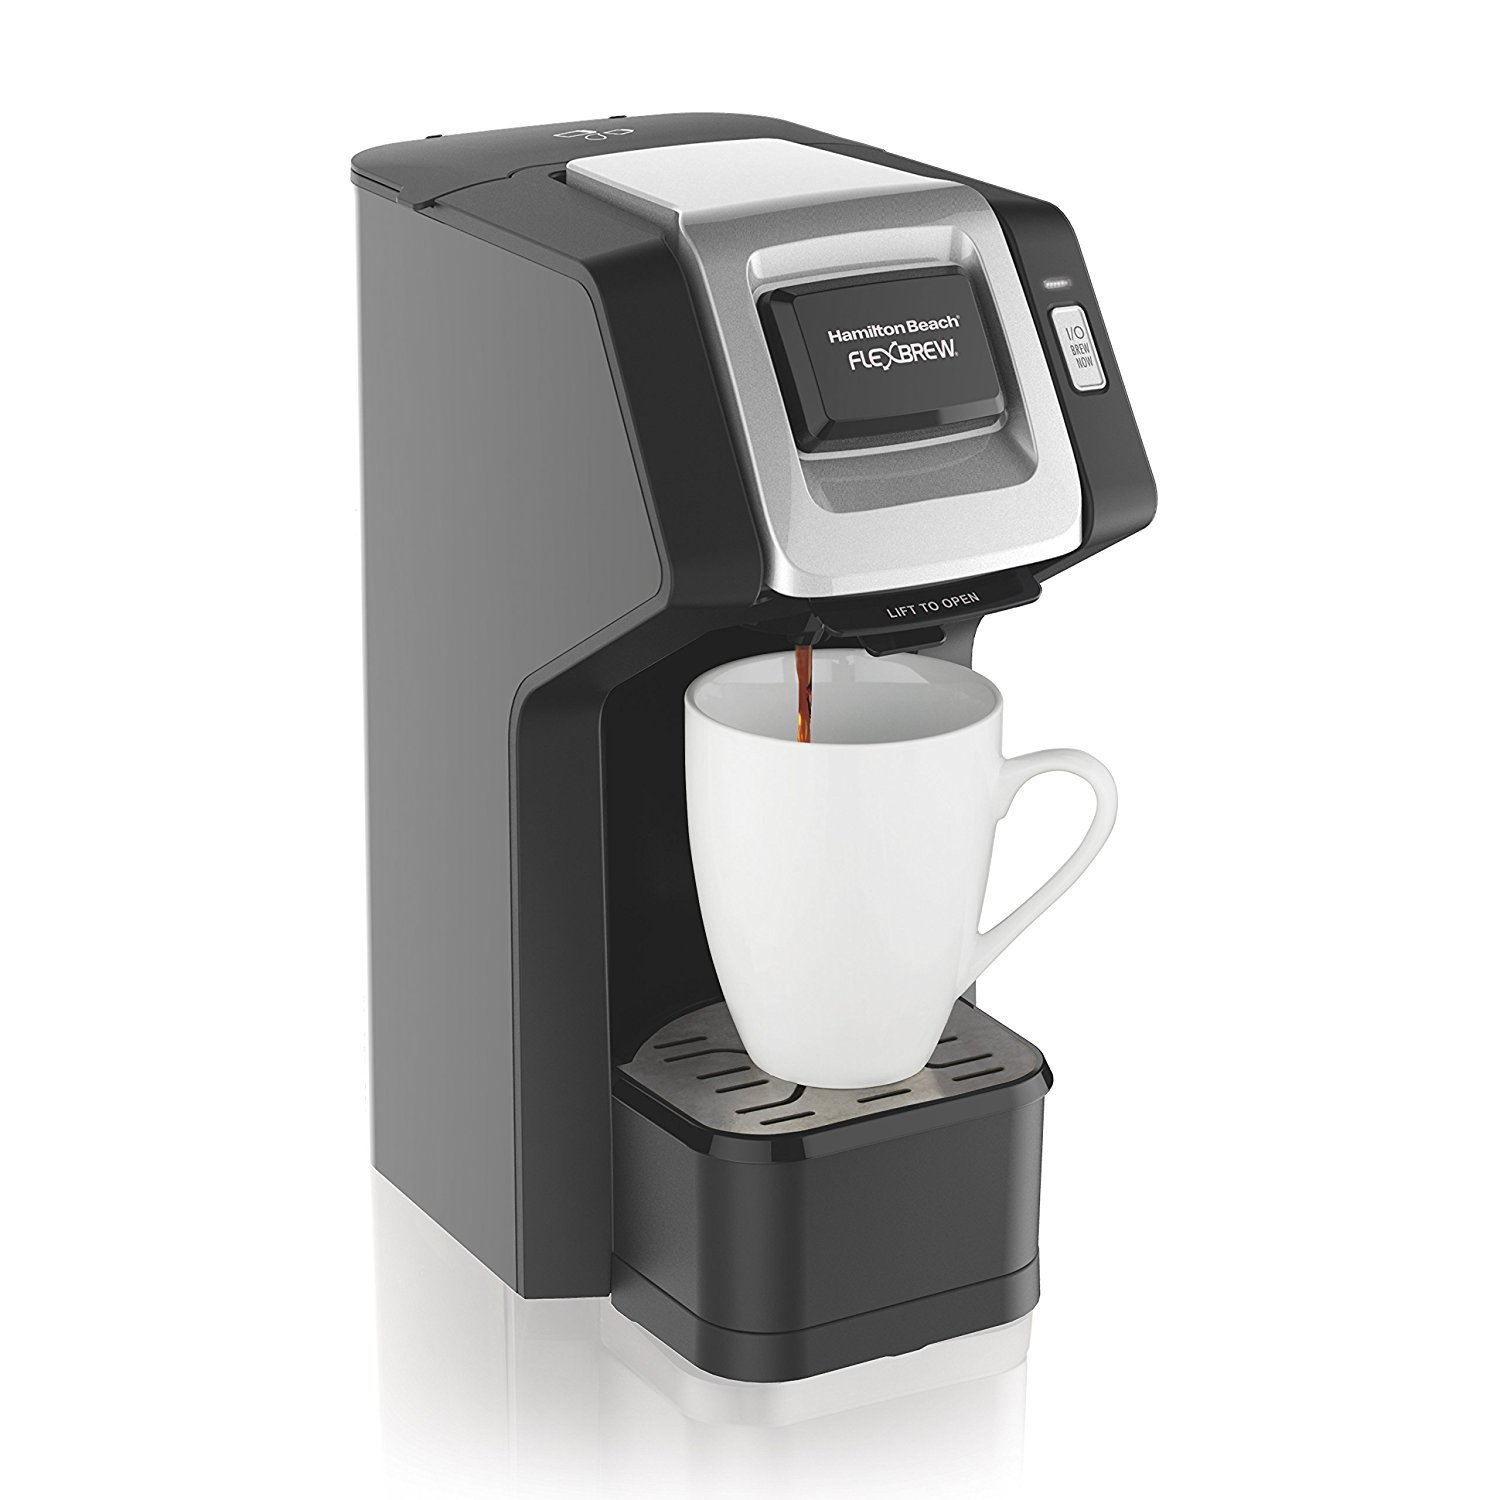 Hamilton Beach 49974 FlexBrew Single-Serve Coffee Maker for K-Cups and Ground Coffee